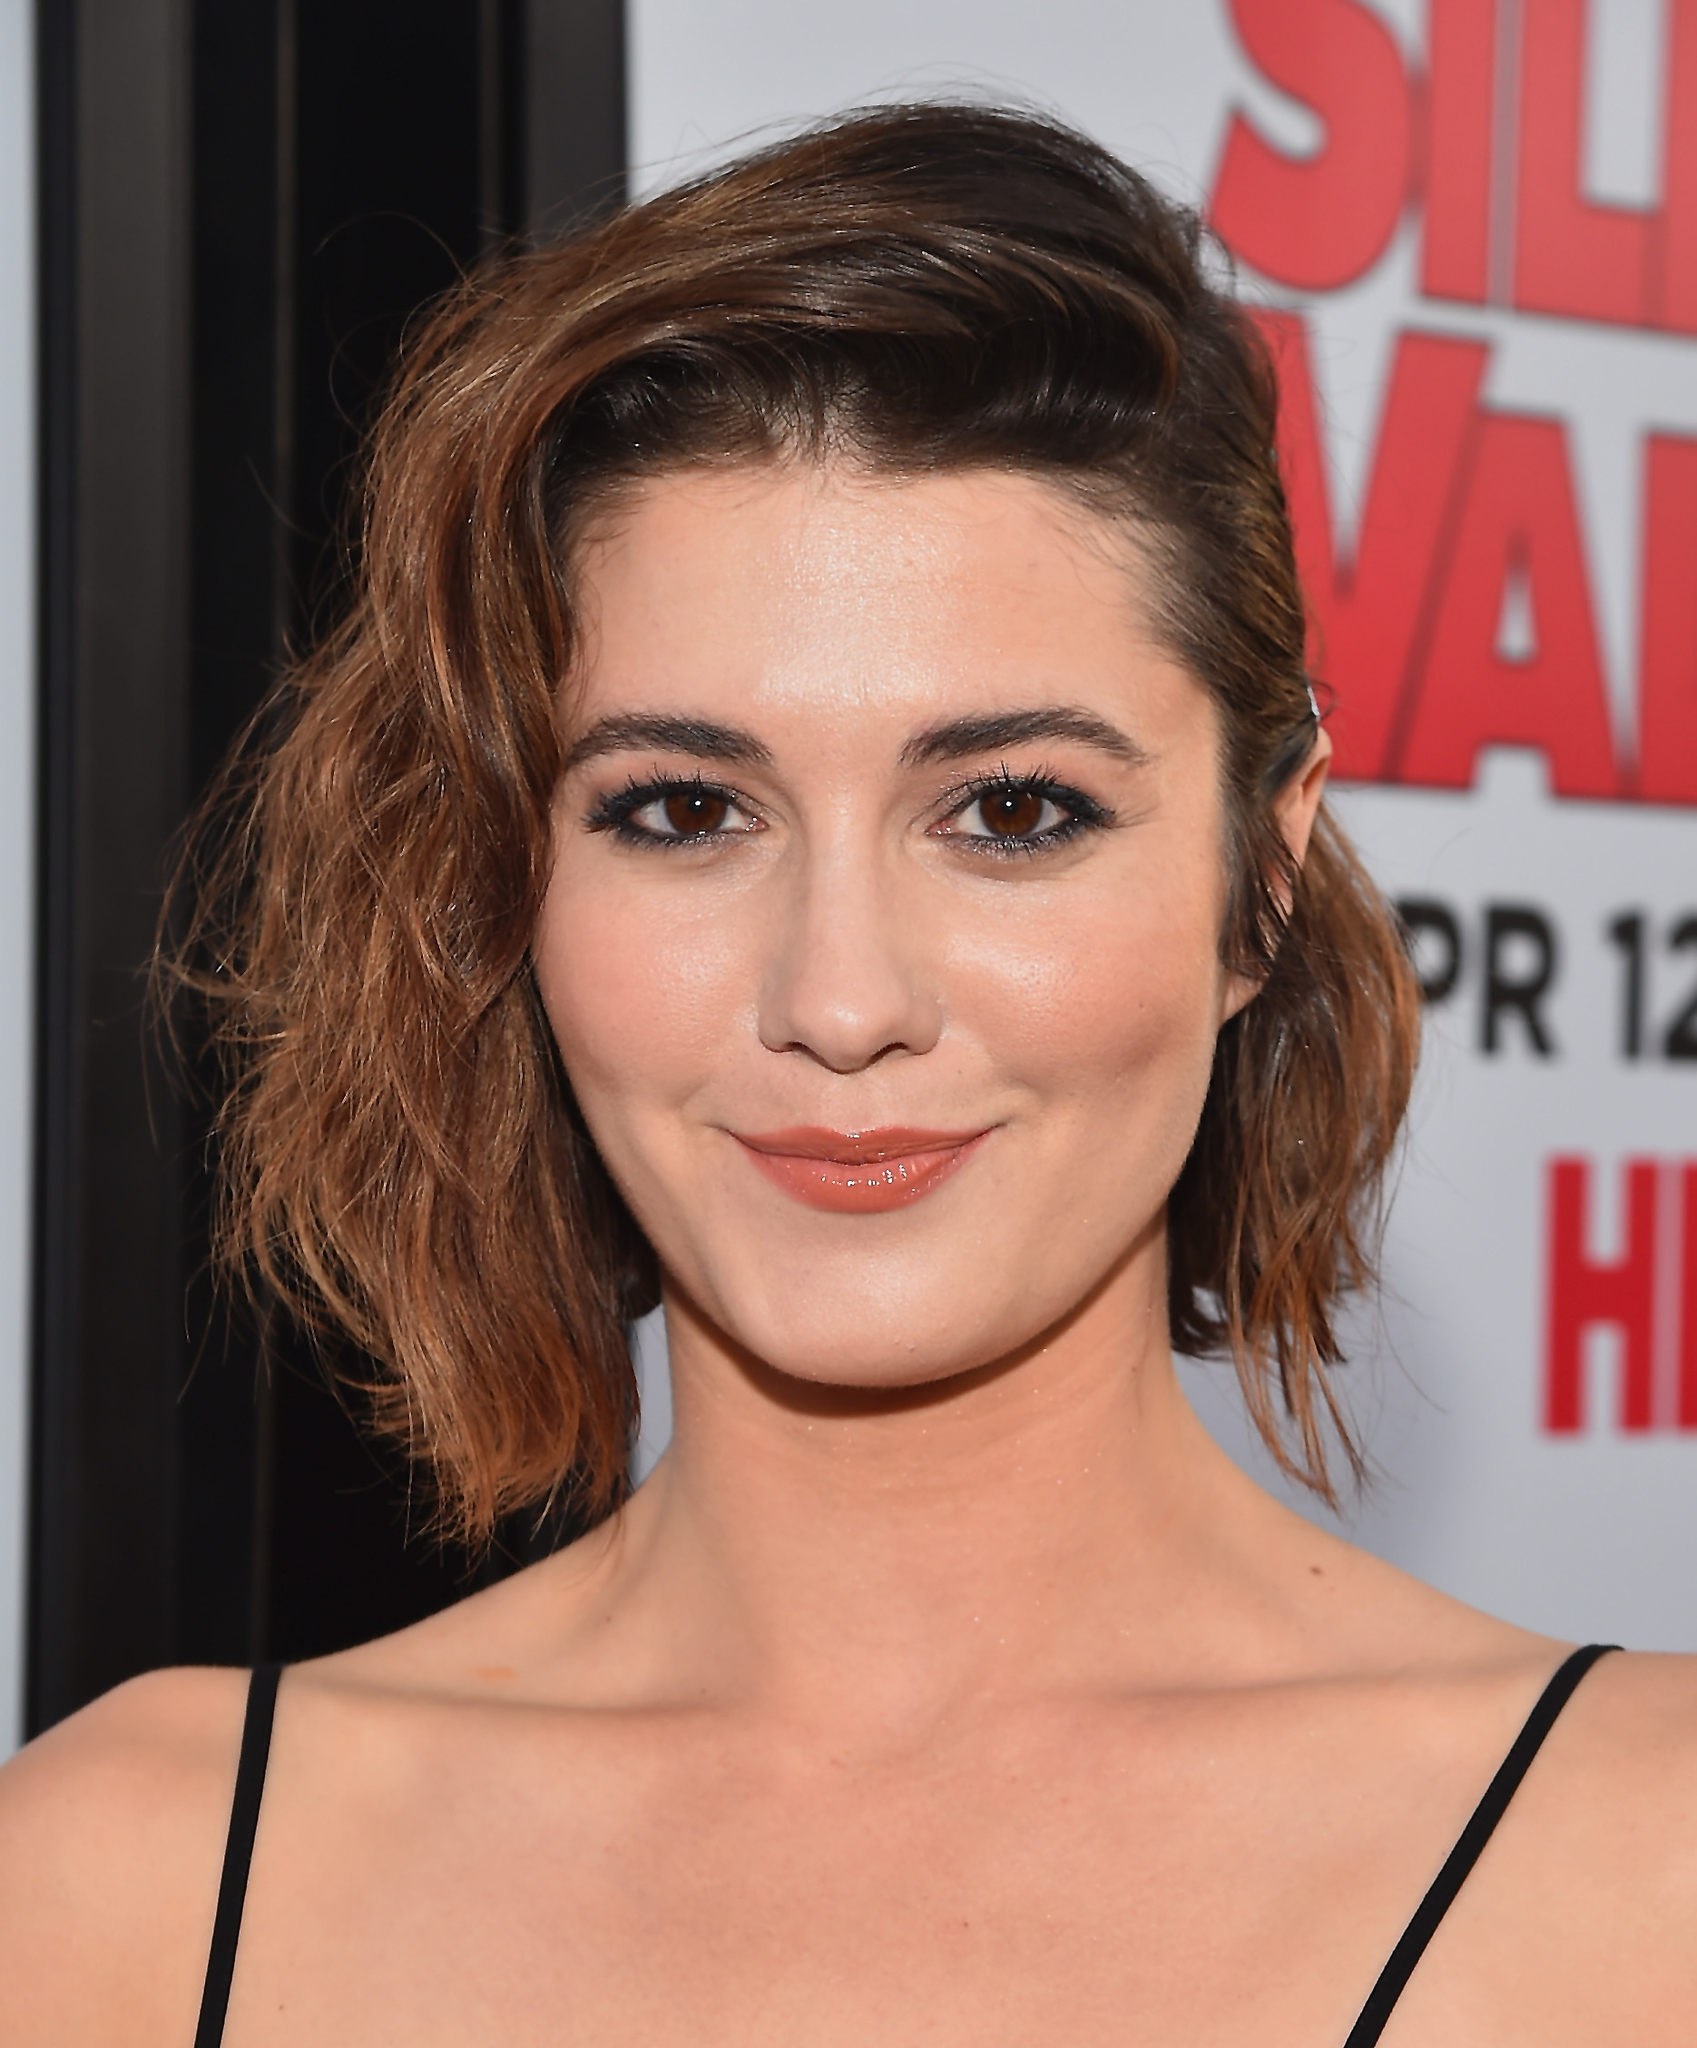 Mary Elizabeth Winstead at event of Silicon Valley (2014)